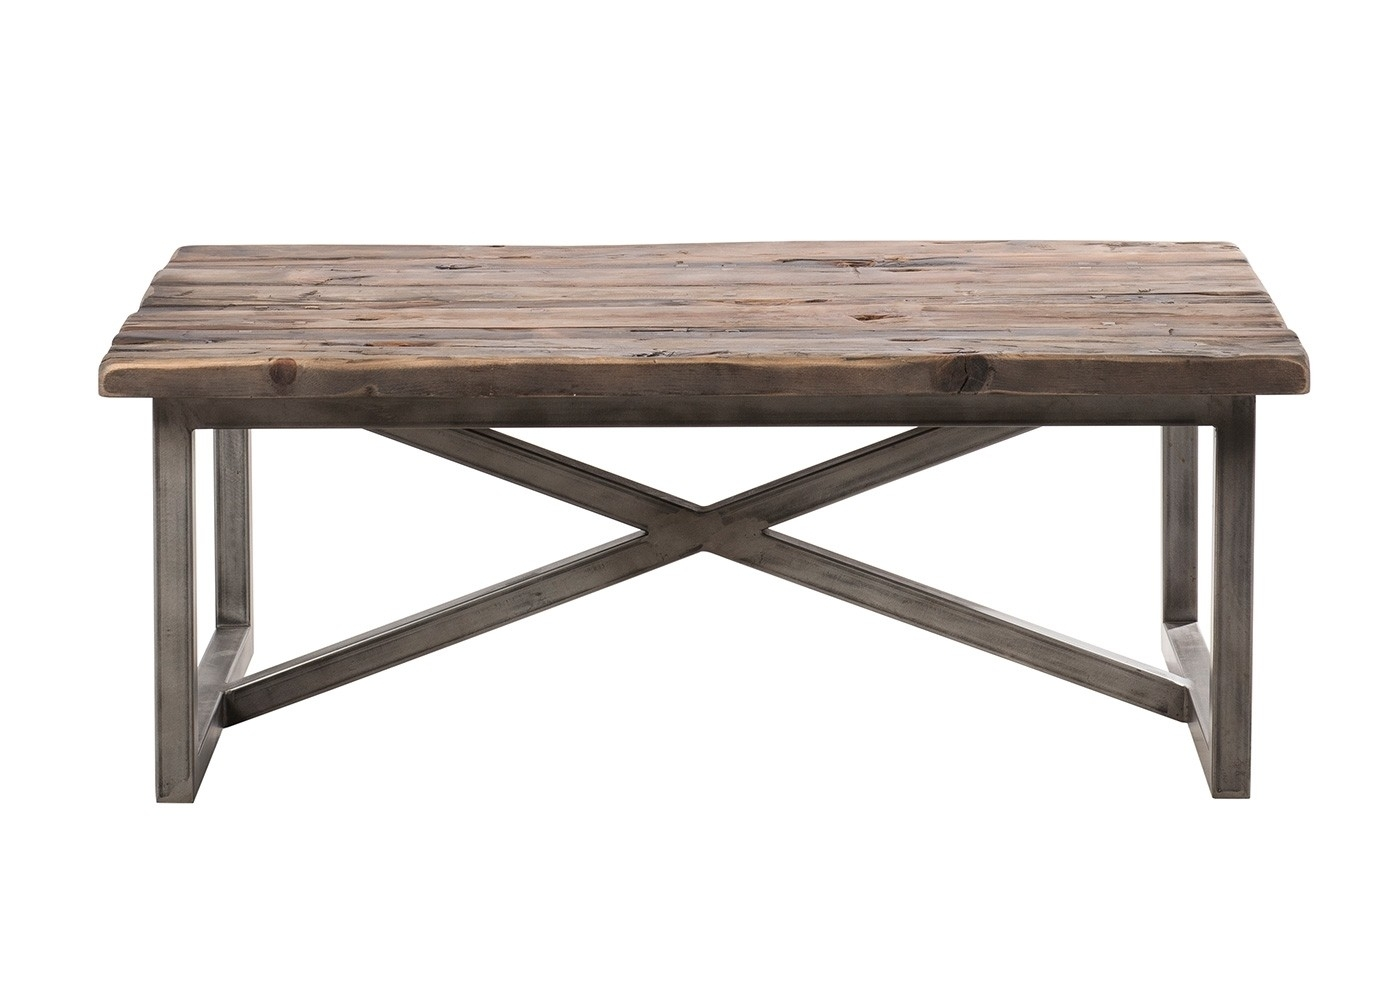 Timothy Oulton Axel Coffee Table | Heal's with regard to Suspend Ii Marble and Wood Coffee Tables (Image 25 of 30)